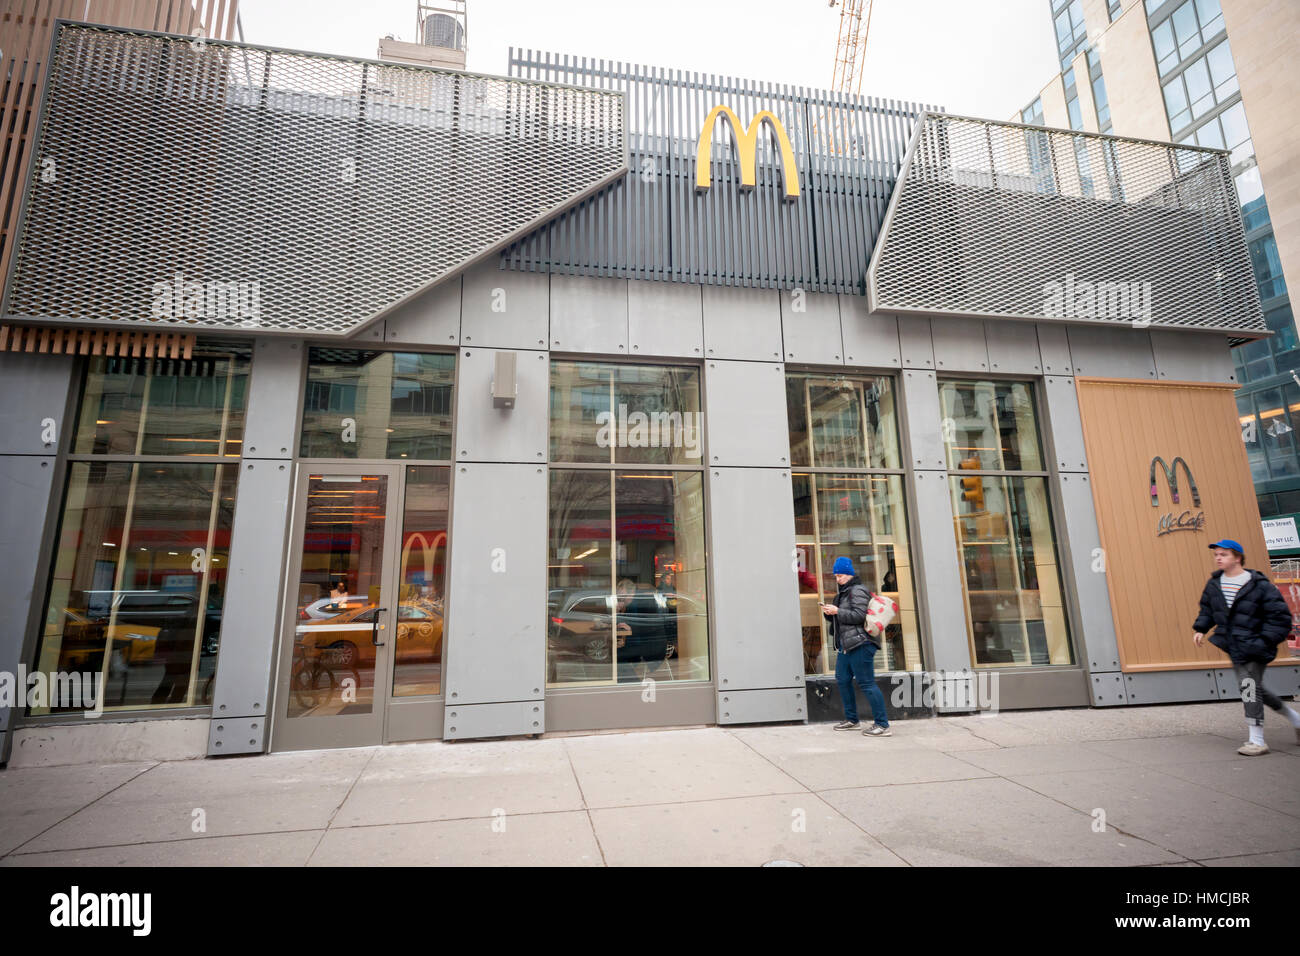 A Prototype Mcdonald 39 S In New York Upscaling With Minimalist Decor Stock Photo Royalty Free